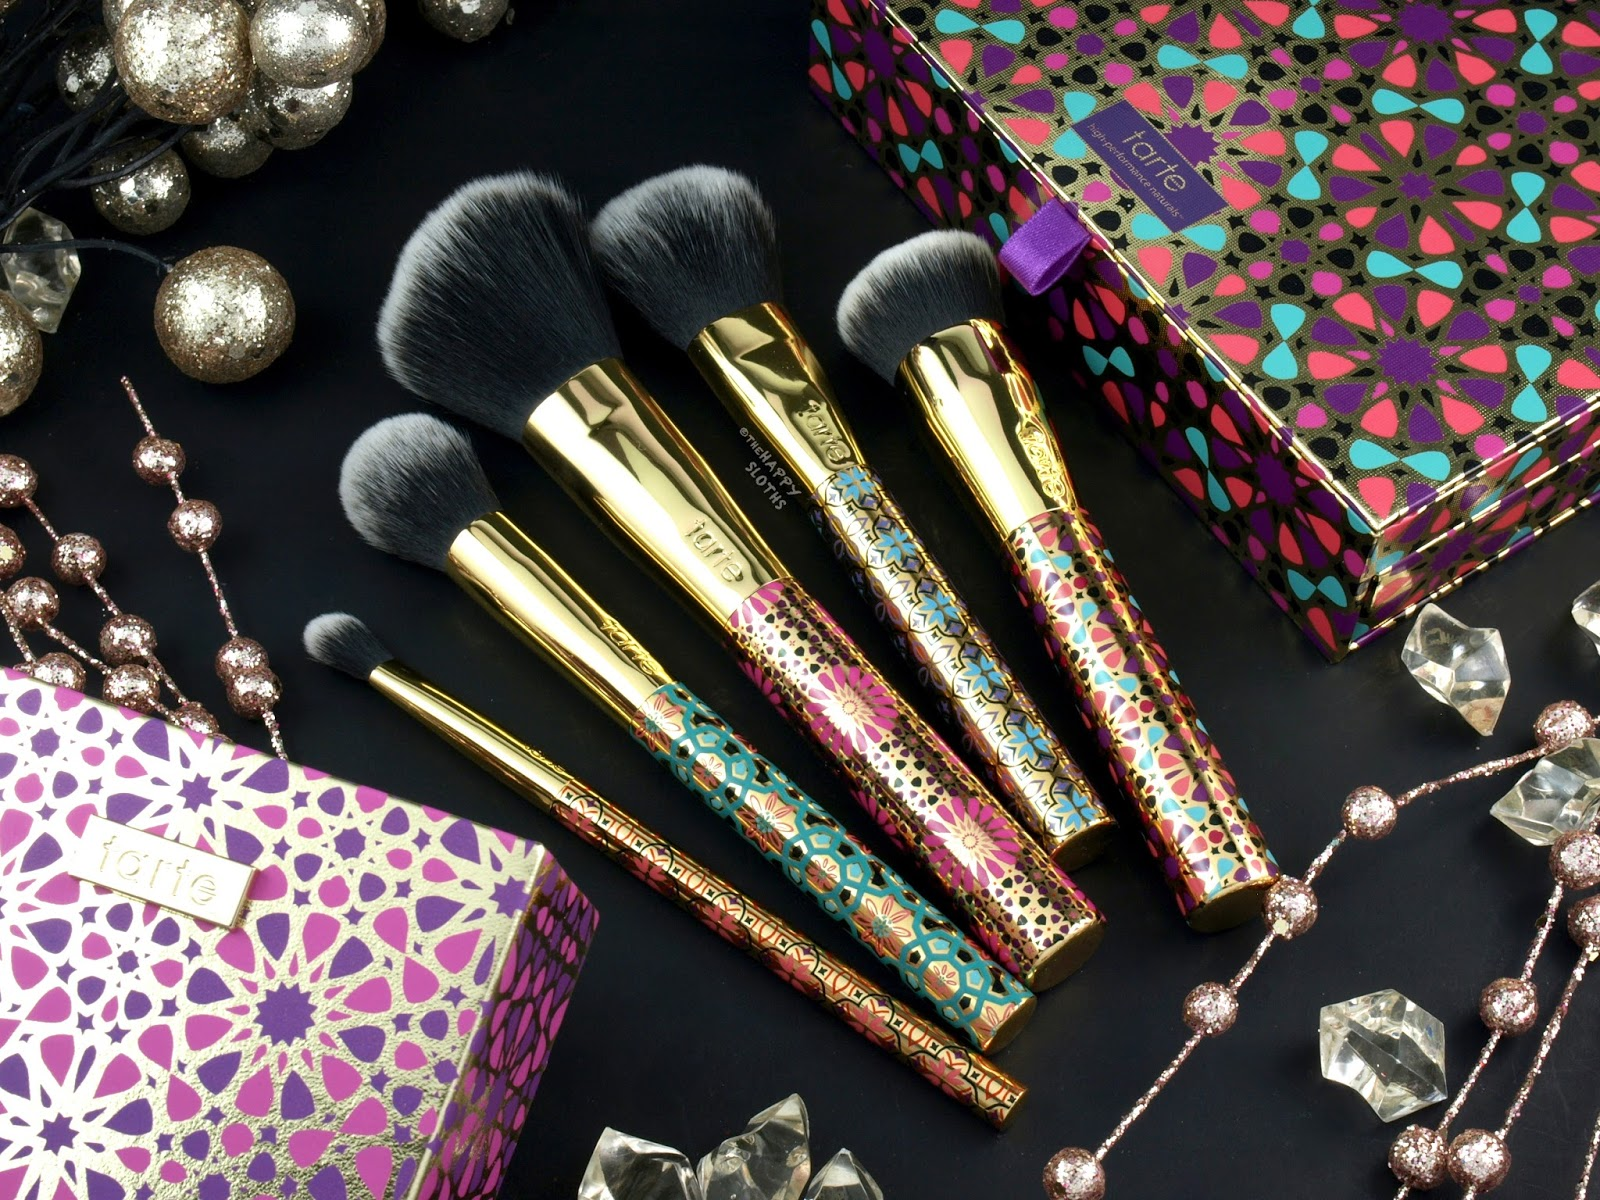 Tarte Holiday 2017 Treasured Tools Brush Set | Review and Swatches